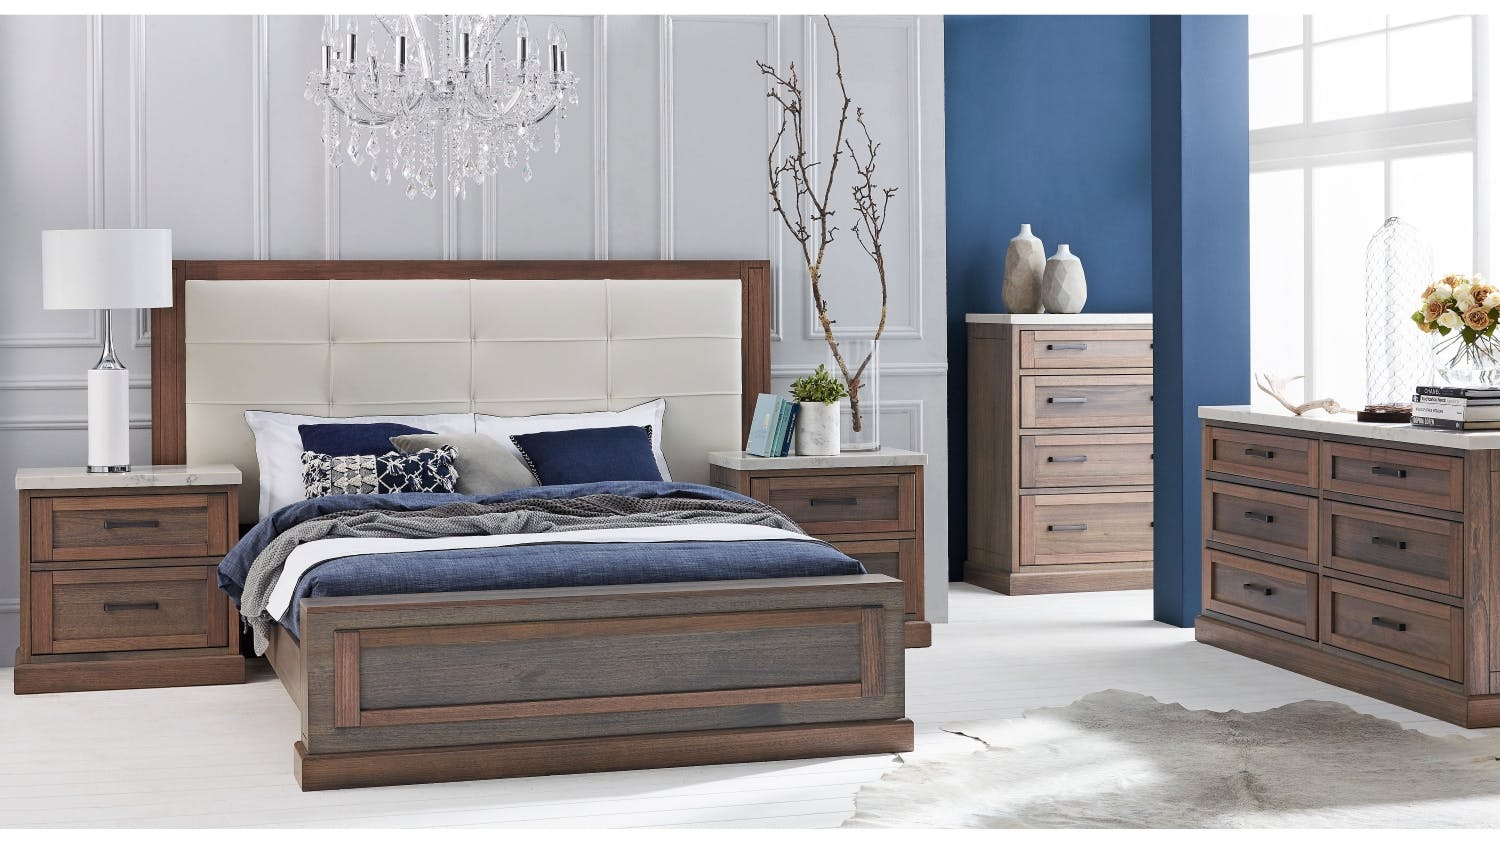 Hamptons Bed Frame With Leather Bedhead Domayne